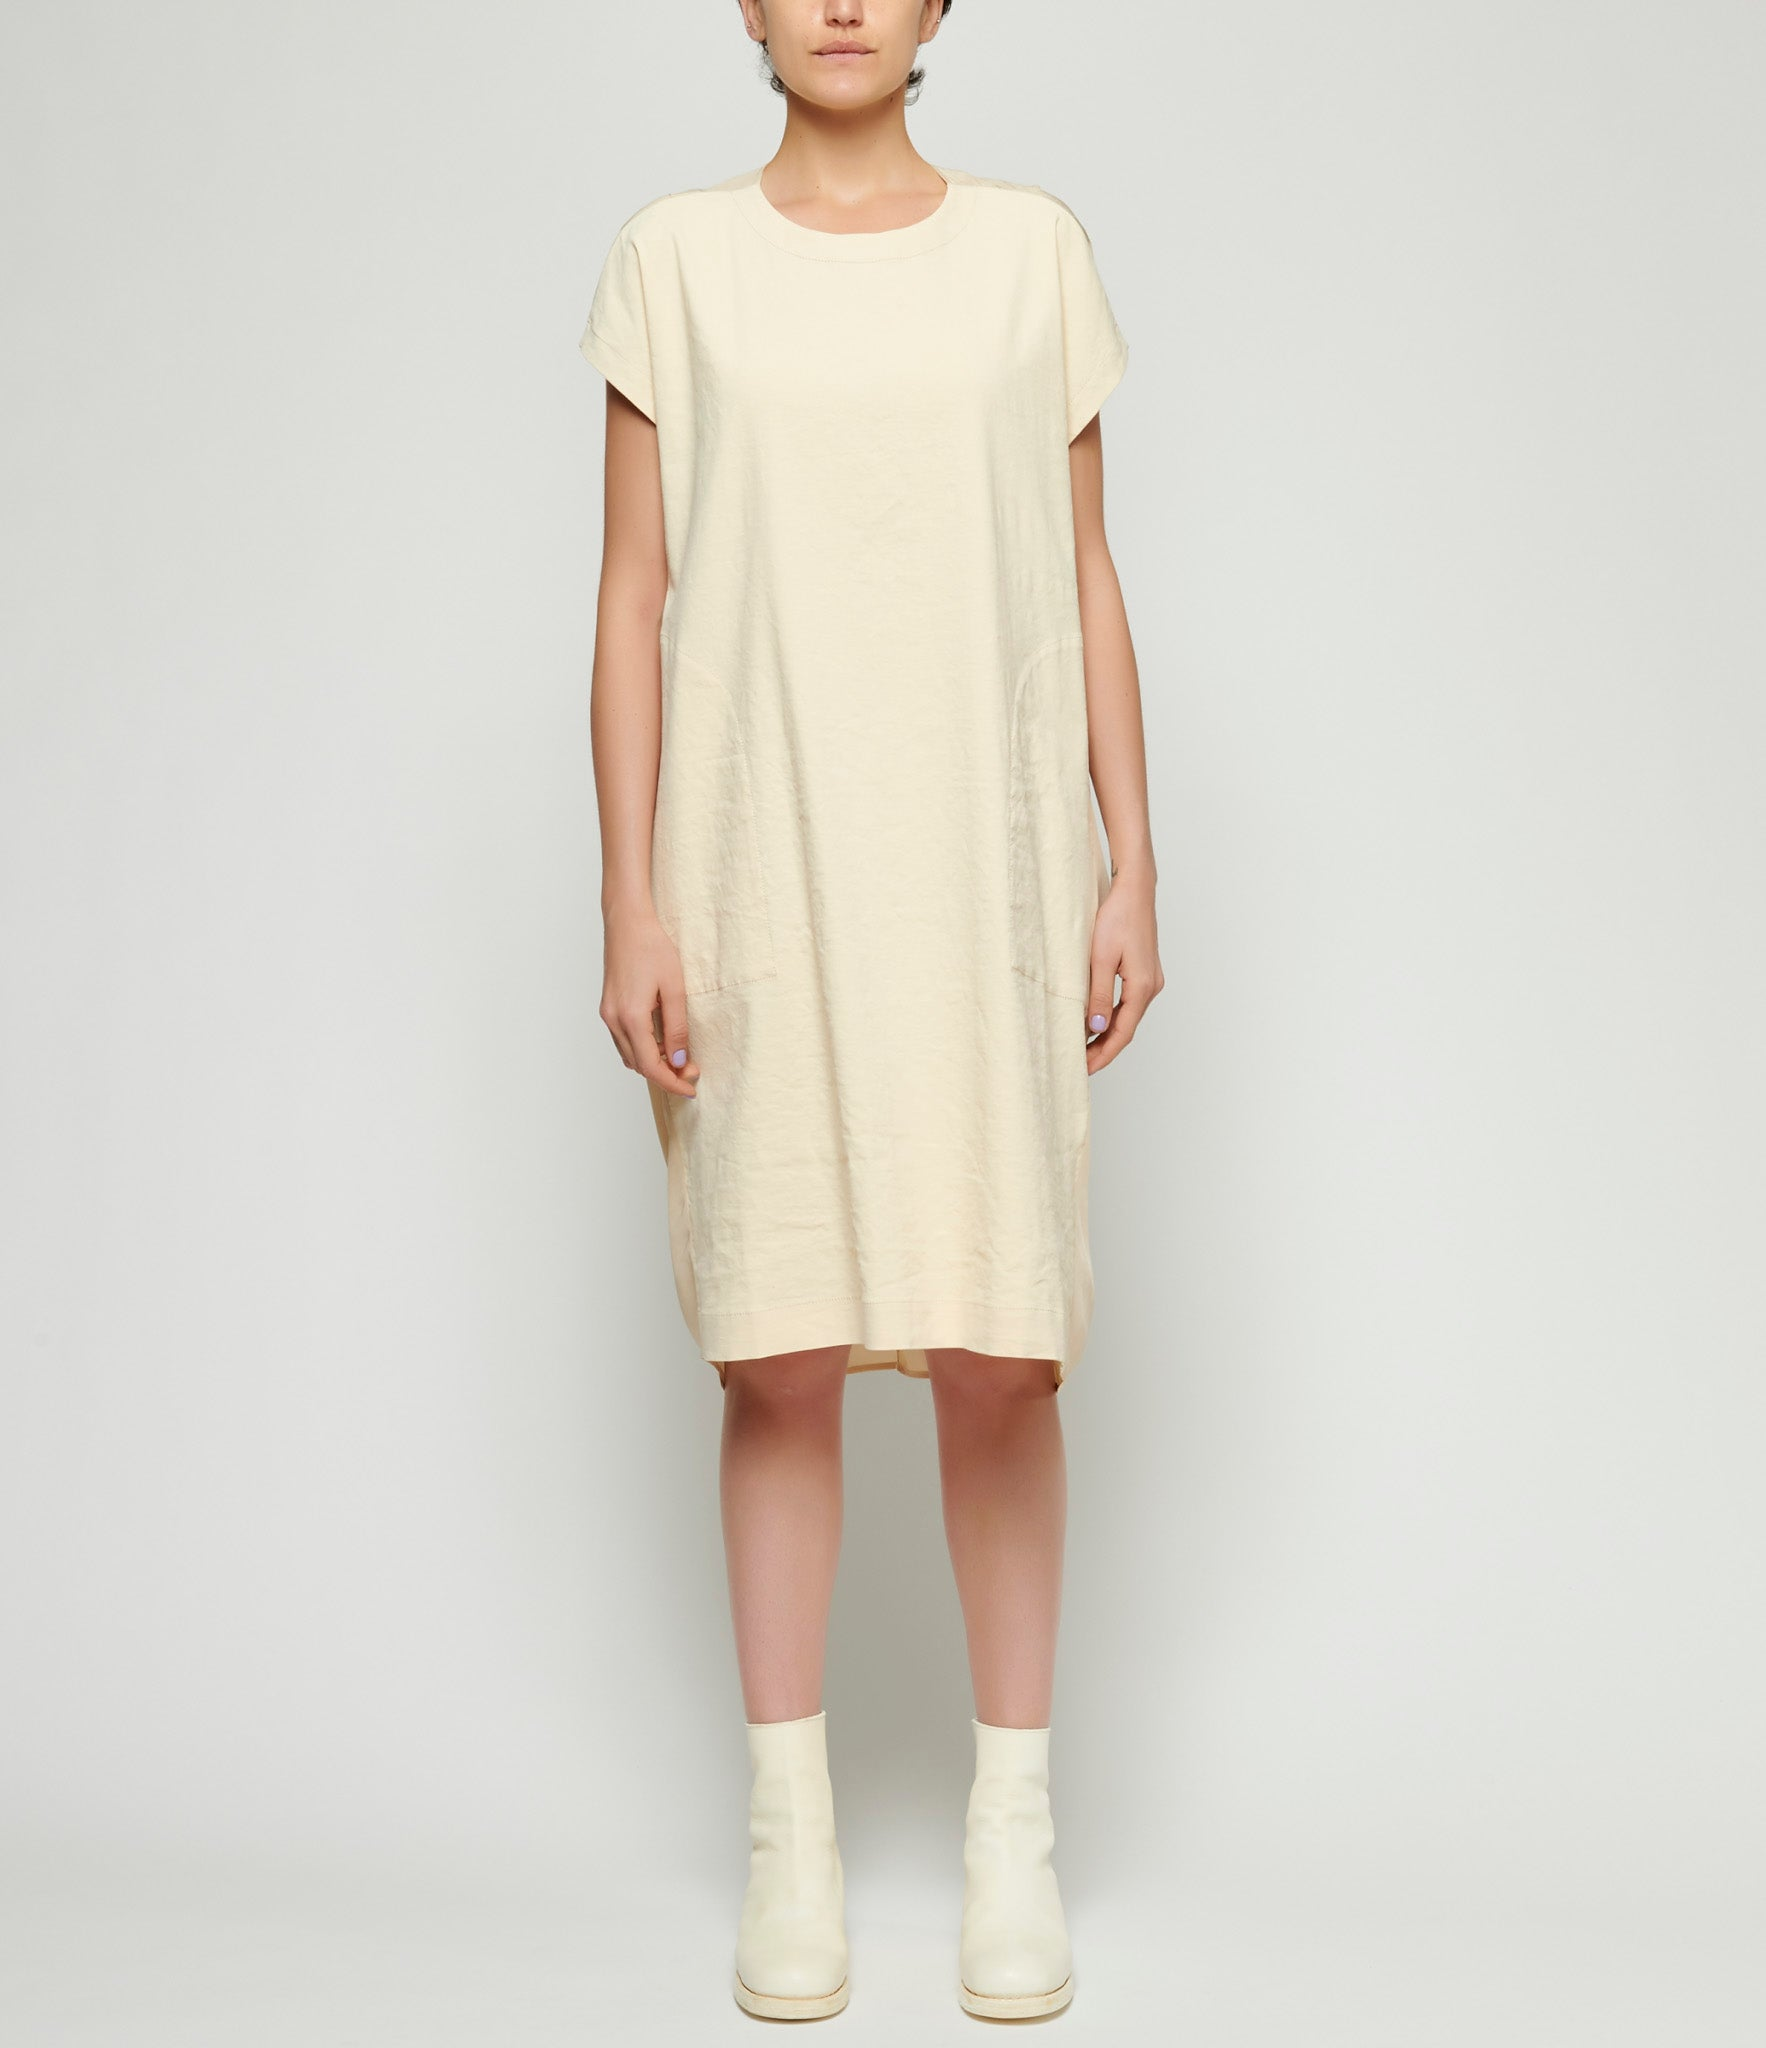 Uma Wang Adalia Dress